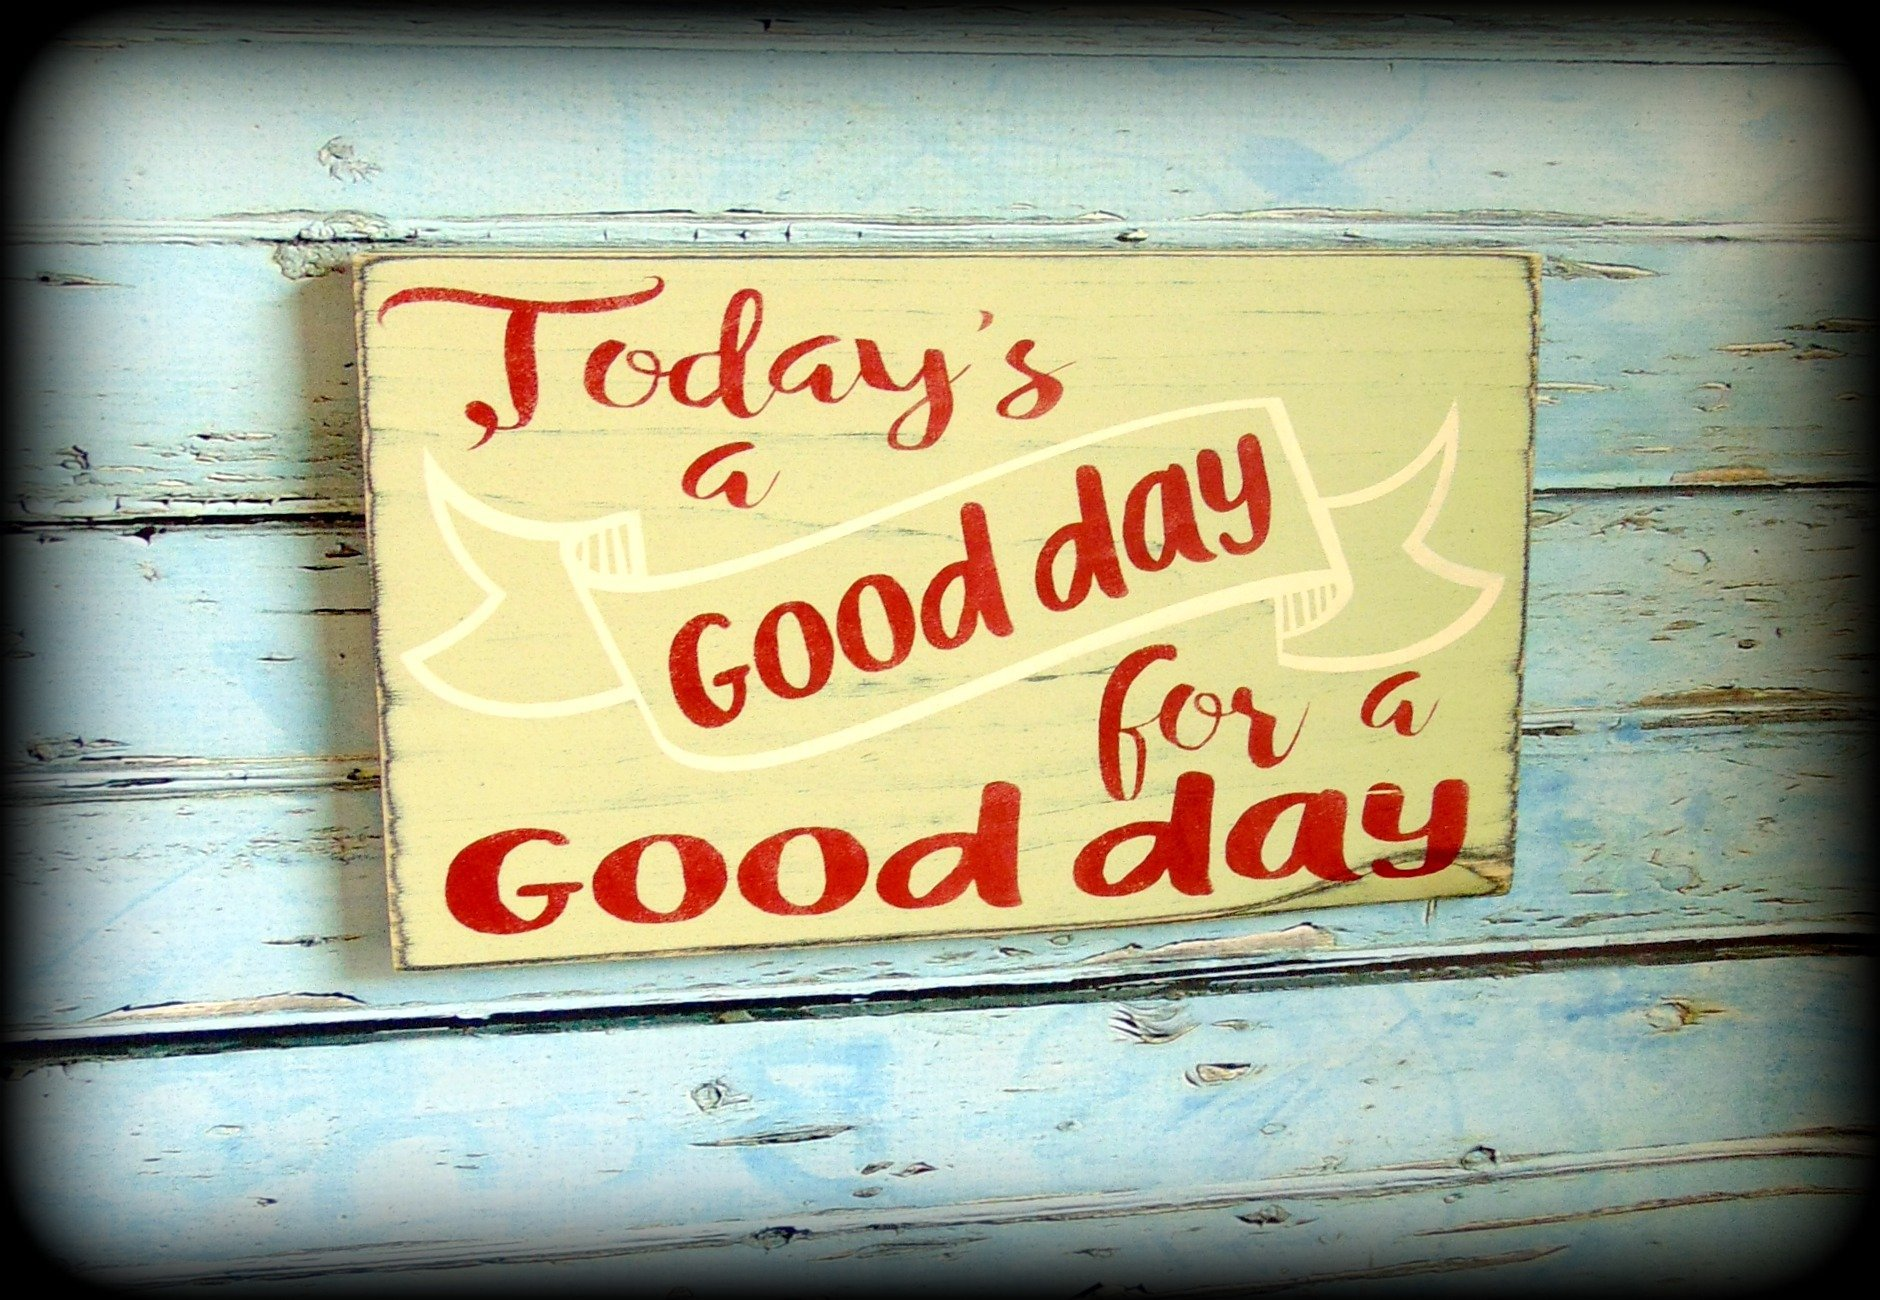 Inspirational Sign Encouragement Gift Rustic Wooden Decor Today's a good day for a good day